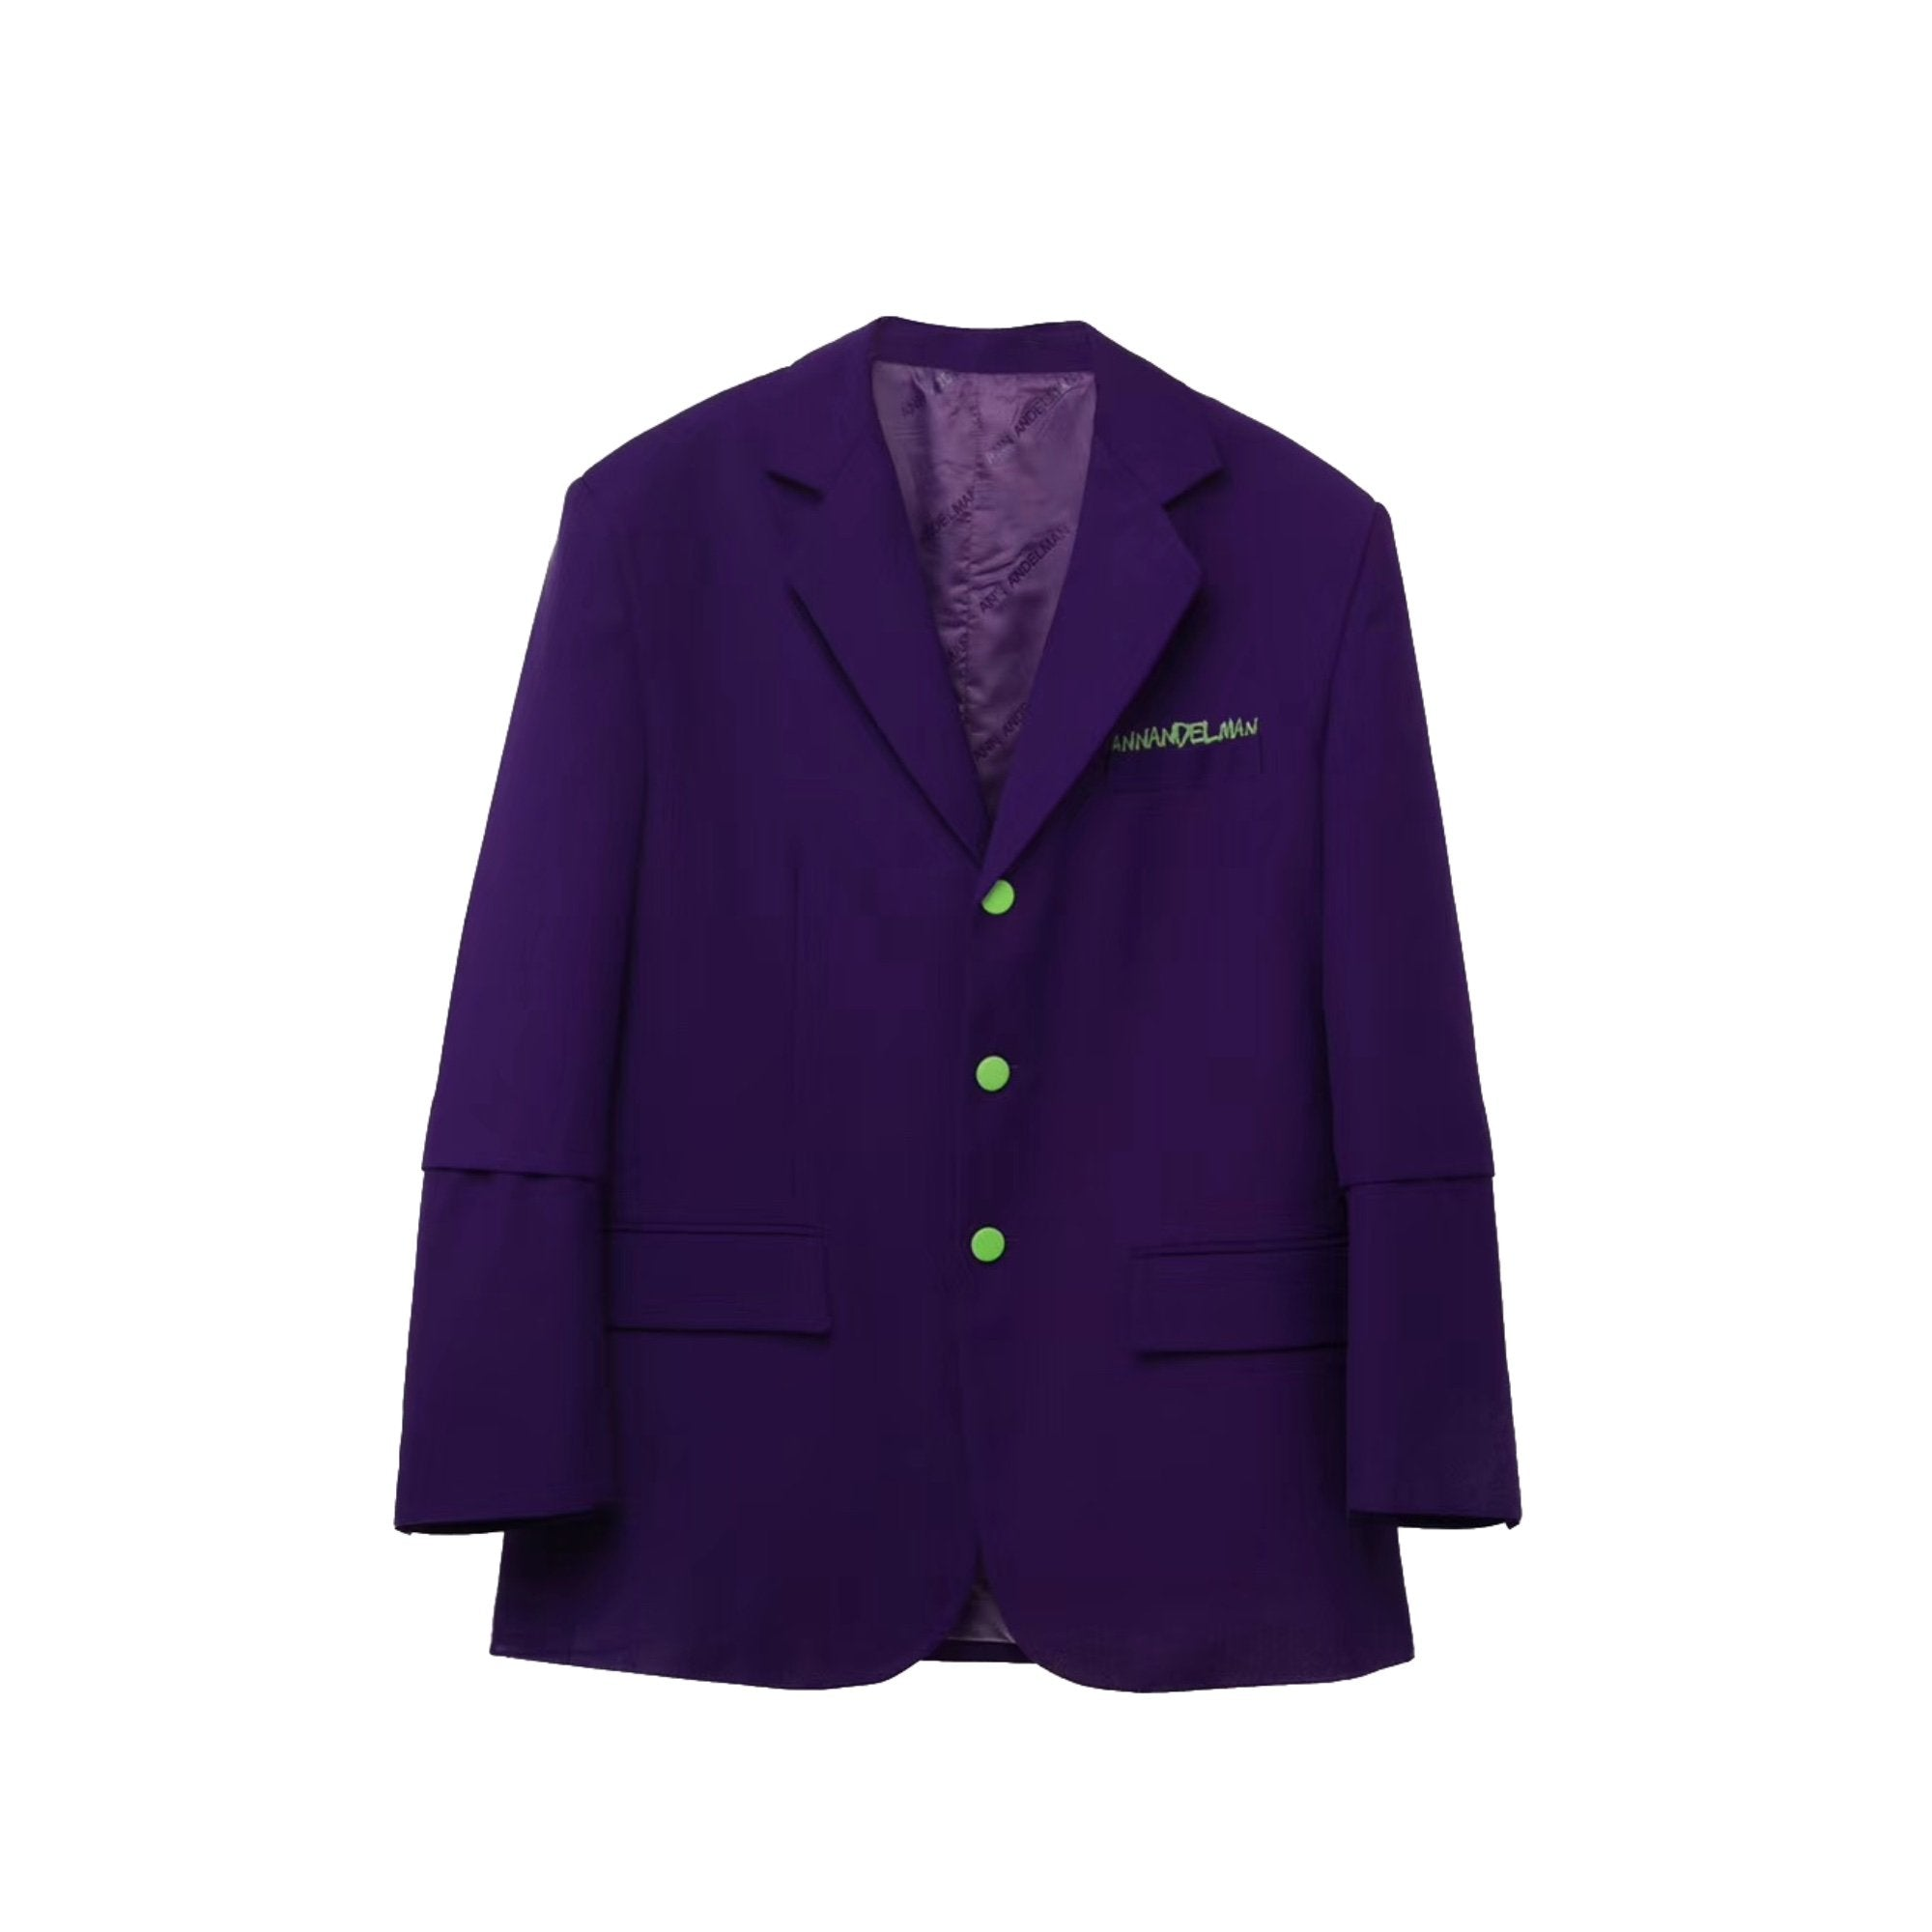 ANN ANDELMAN Oversized Blazer Jacket Purple | MADA IN CHINA